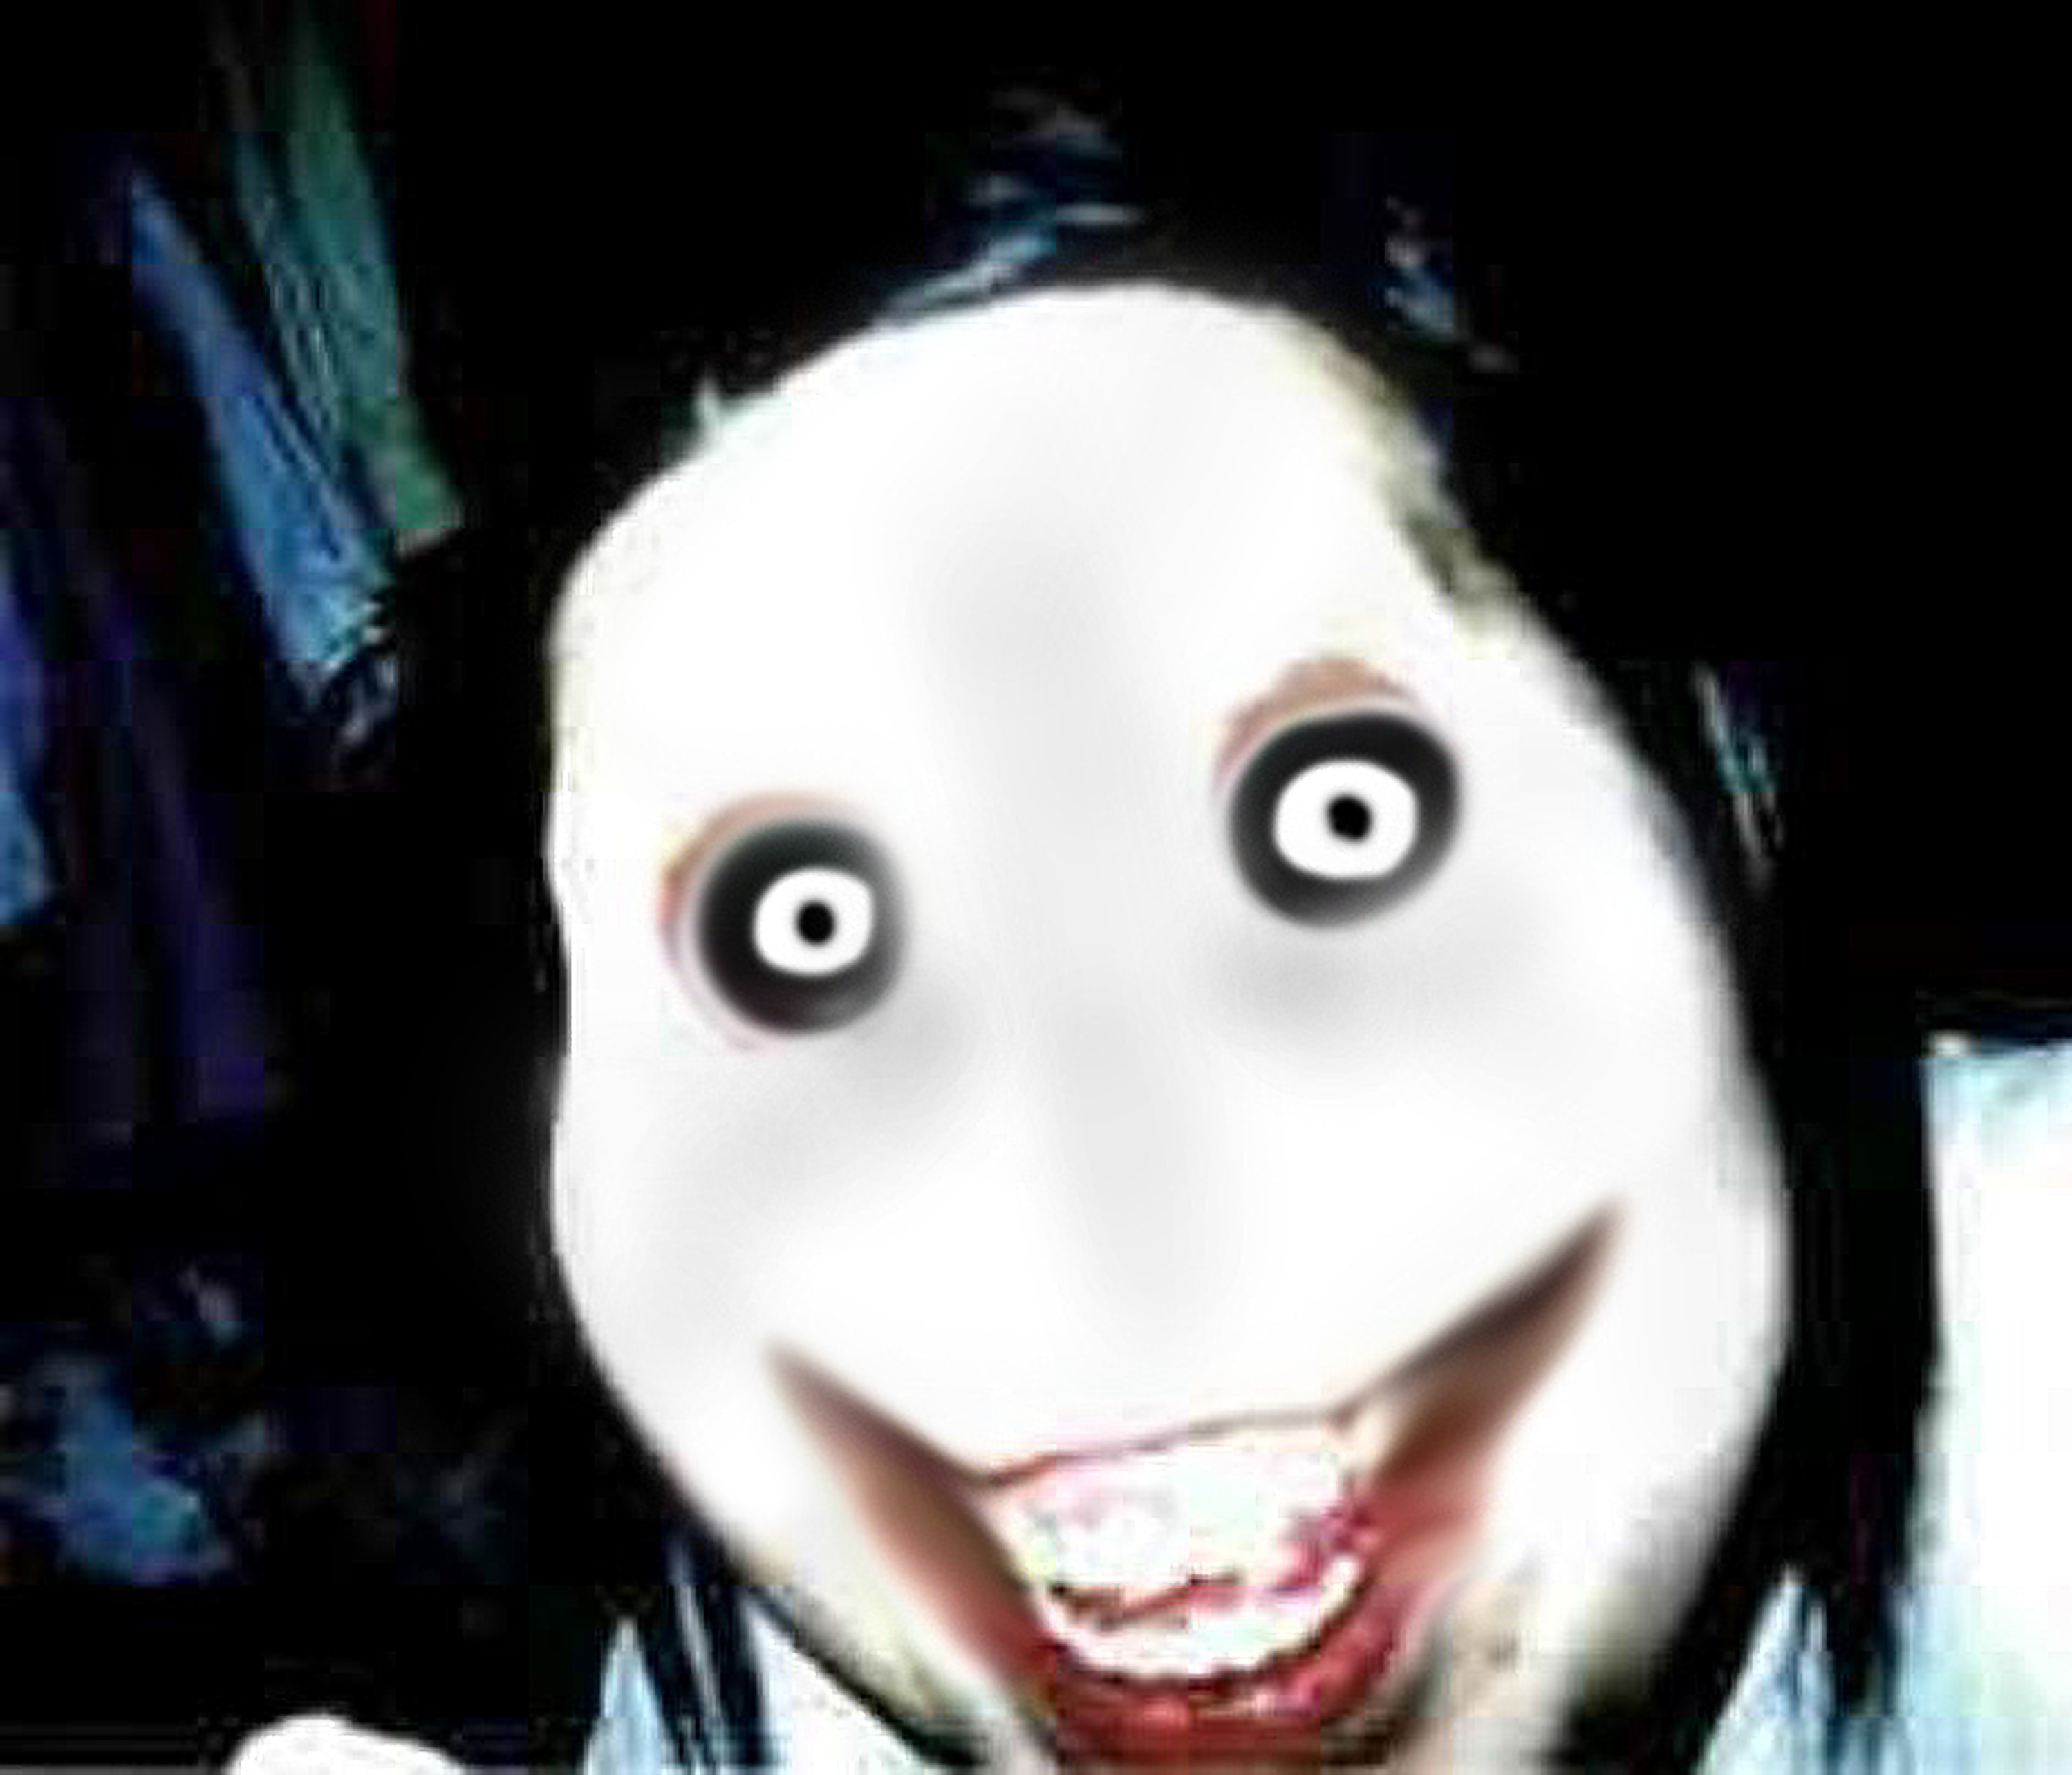 [OFF] Juego ILLUSION de Jeff the Killer